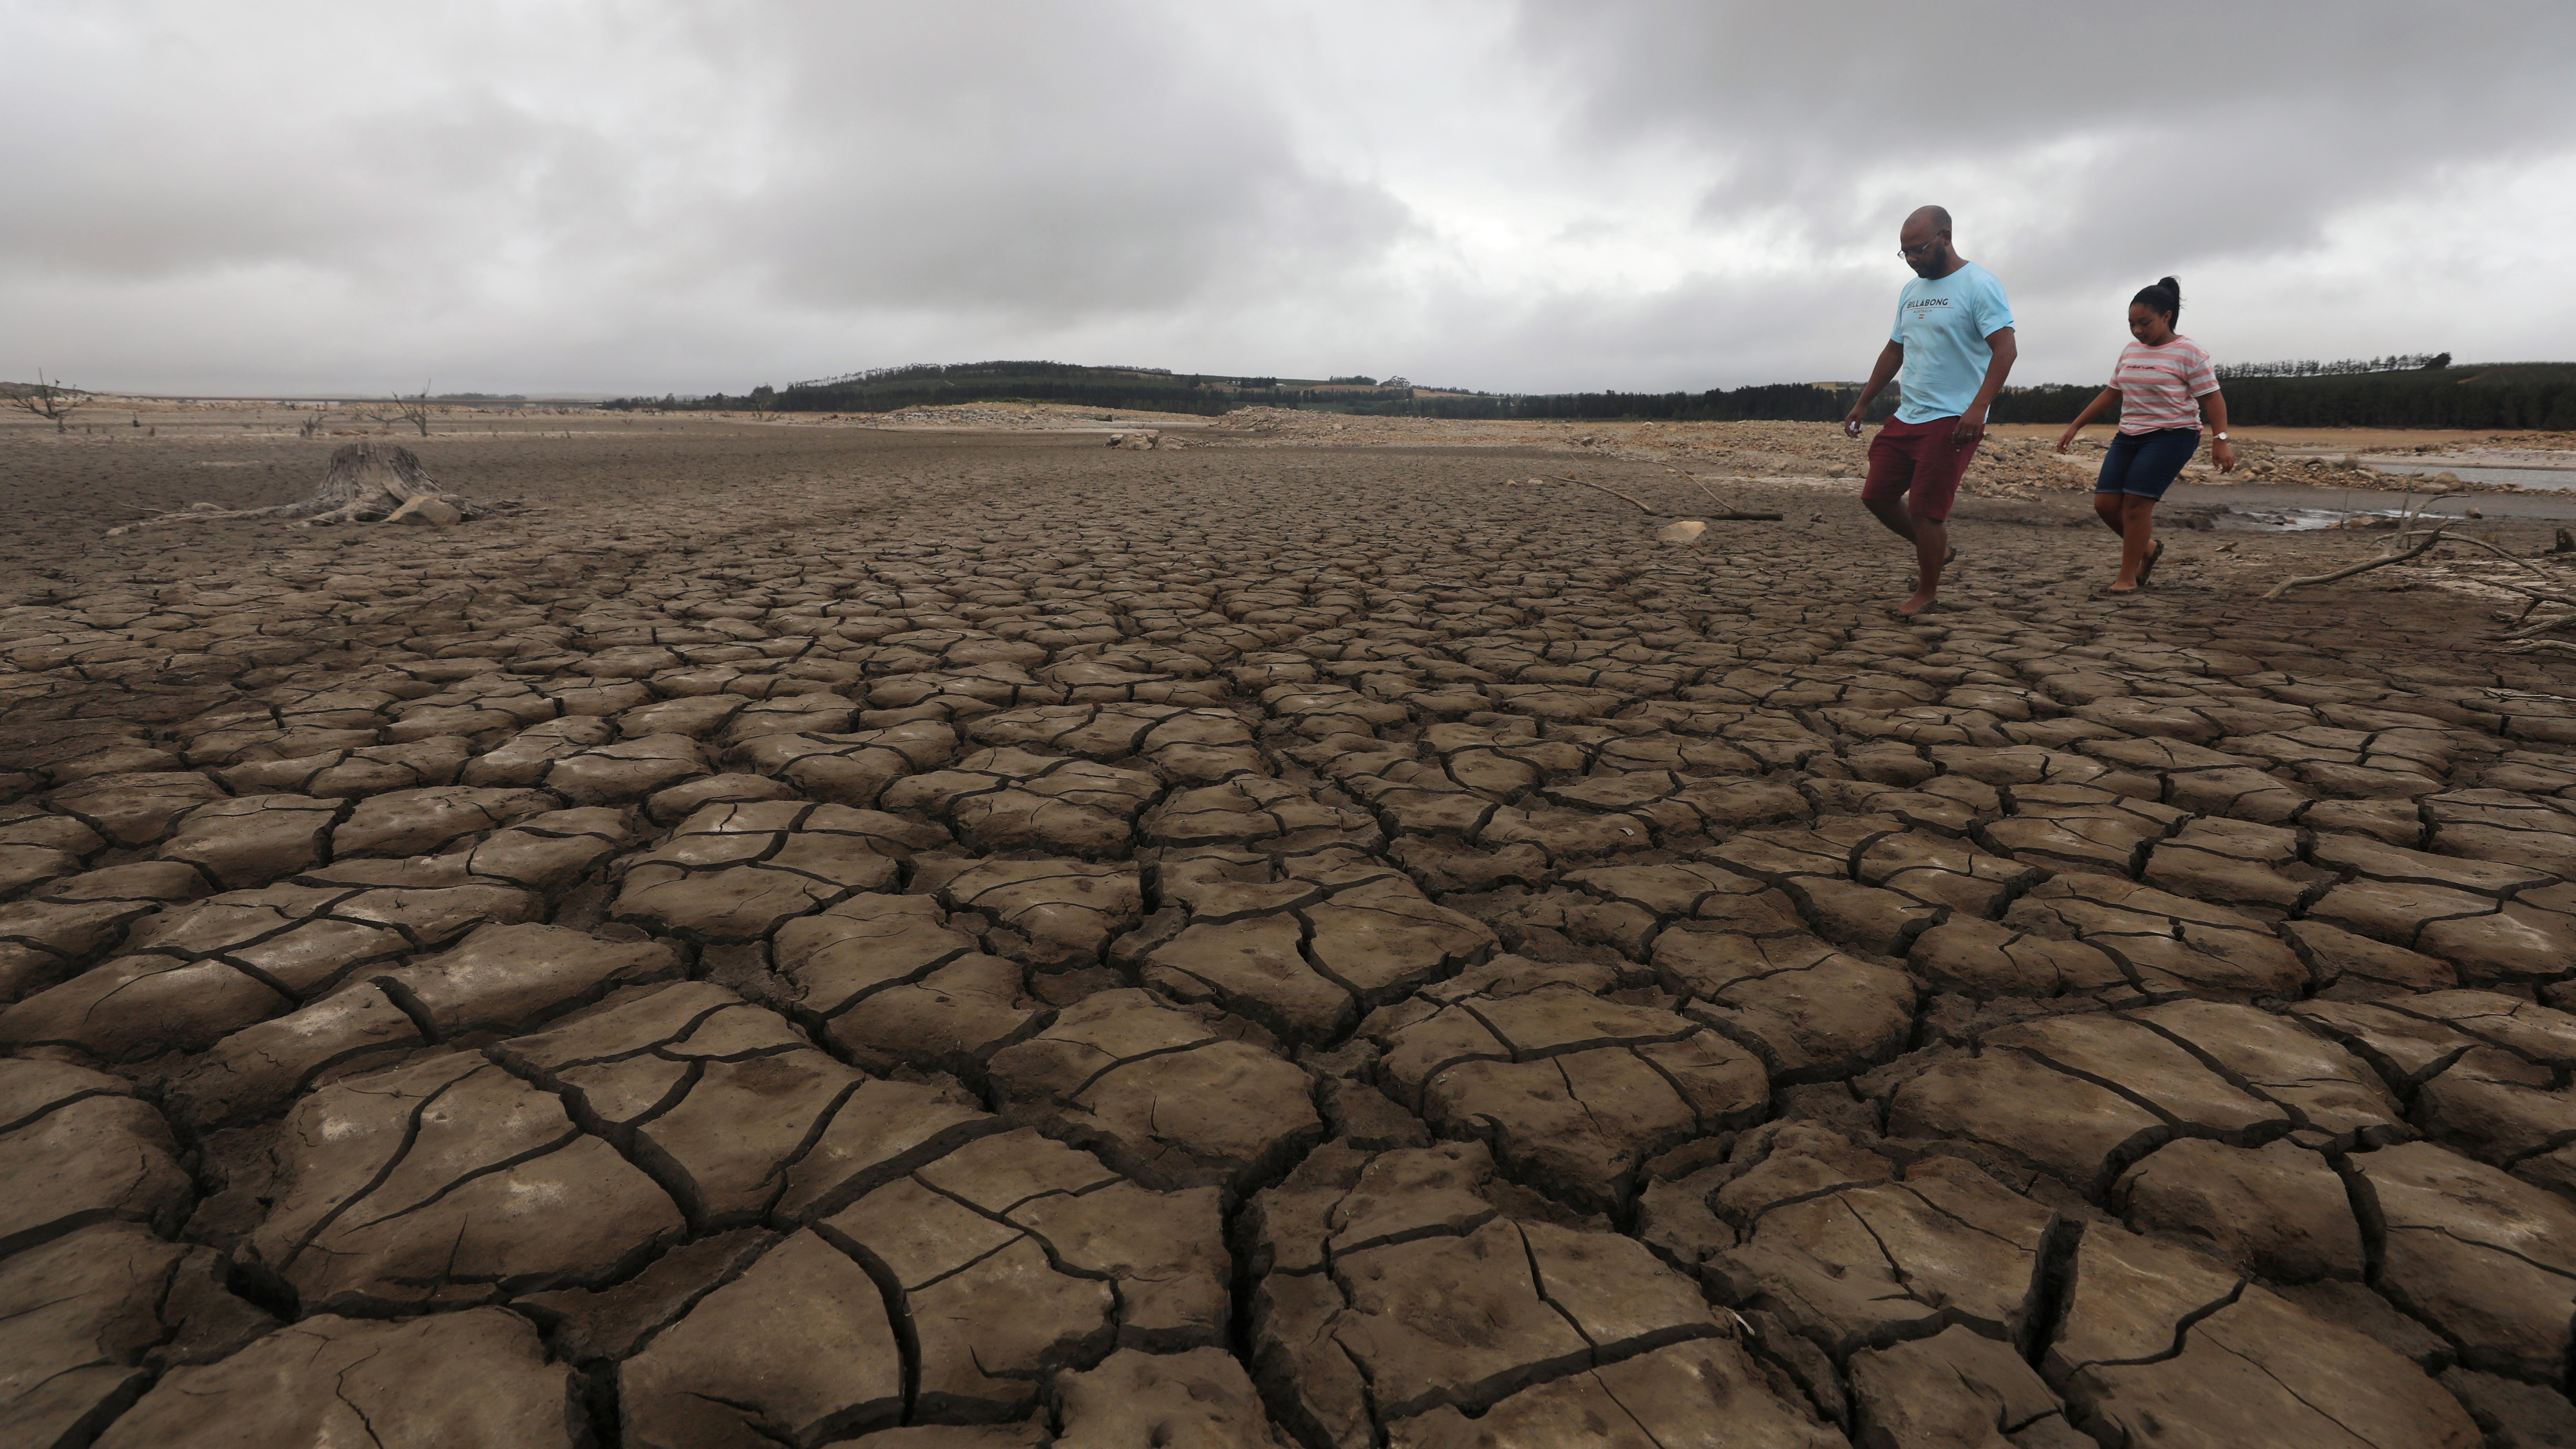 """A family negotiates their way through caked mud around a dried up section of the Theewaterskloof dam near Cape Town, South Africa, January 20, 2018. The dam, which supplies most of Cape Town's potable water, is currently dangerously low as the city faces """"Day Zero"""", the point at which taps will be shut down accross the city.  Picture taken January 20, 2018. REUTERS/Mike Hutchings - RC176FA9C1B0"""